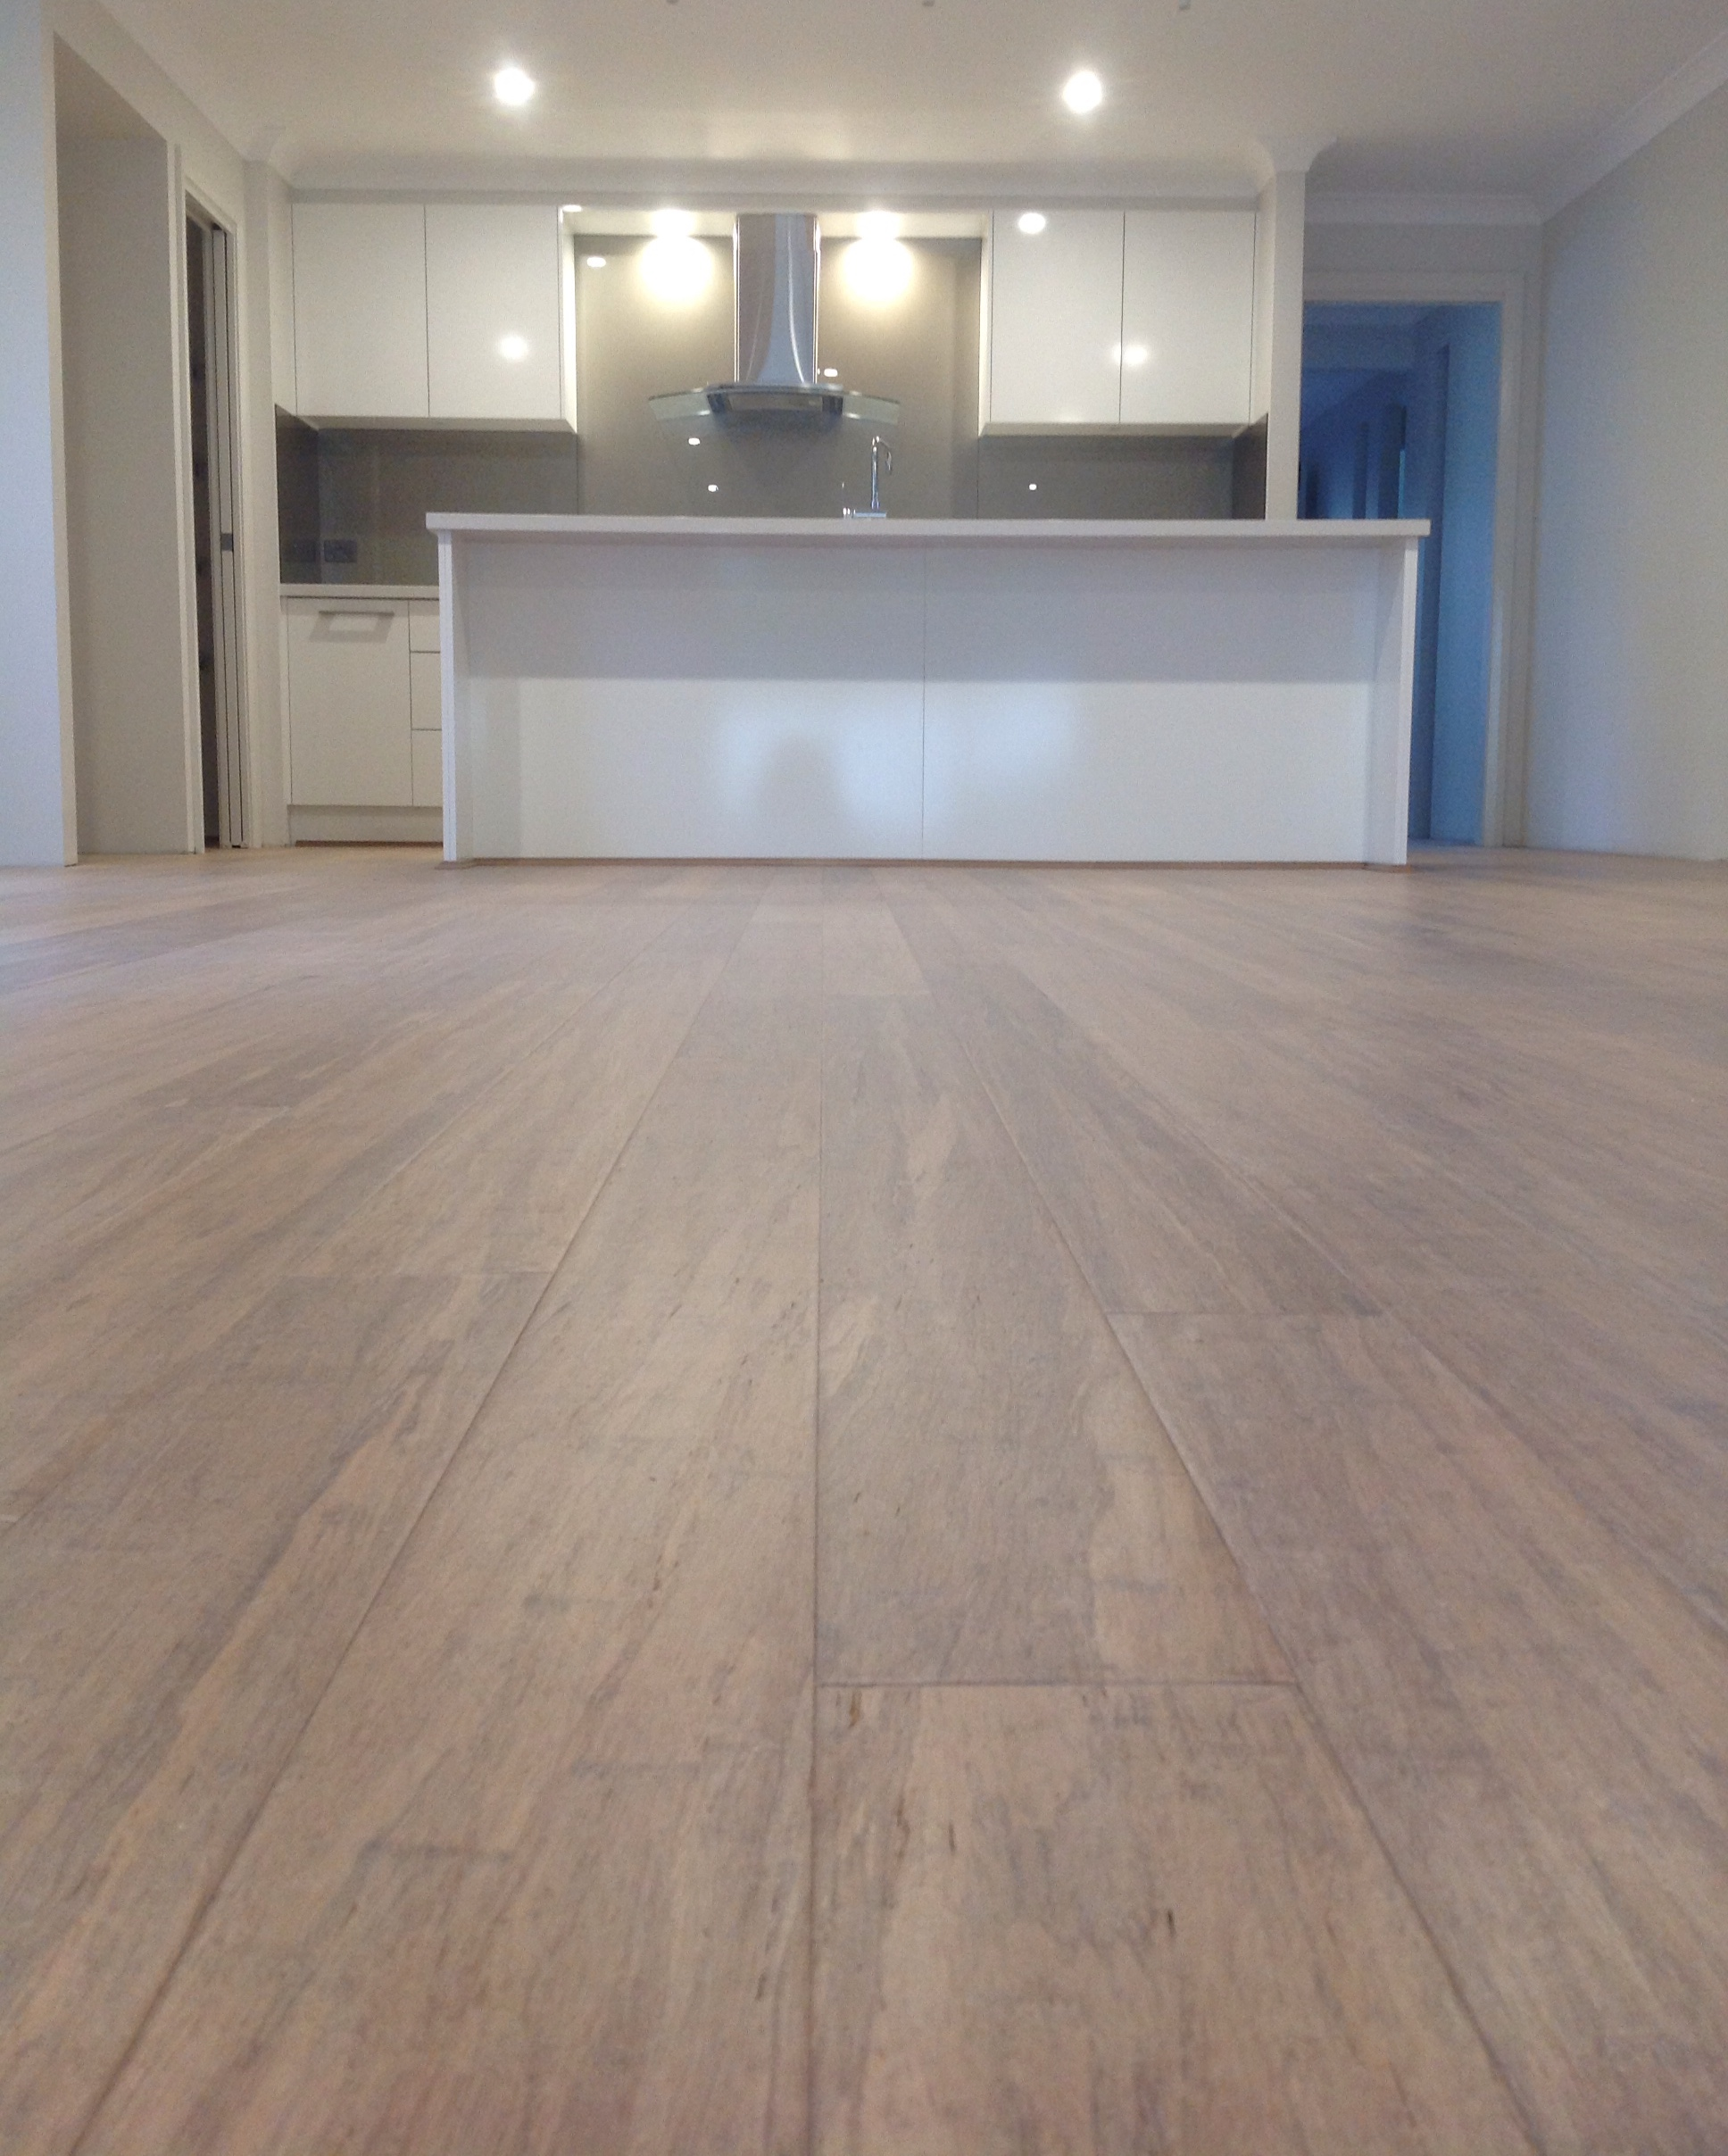 Bamboo Flooring Newcastle NSW Timber Laminate Floating Floors